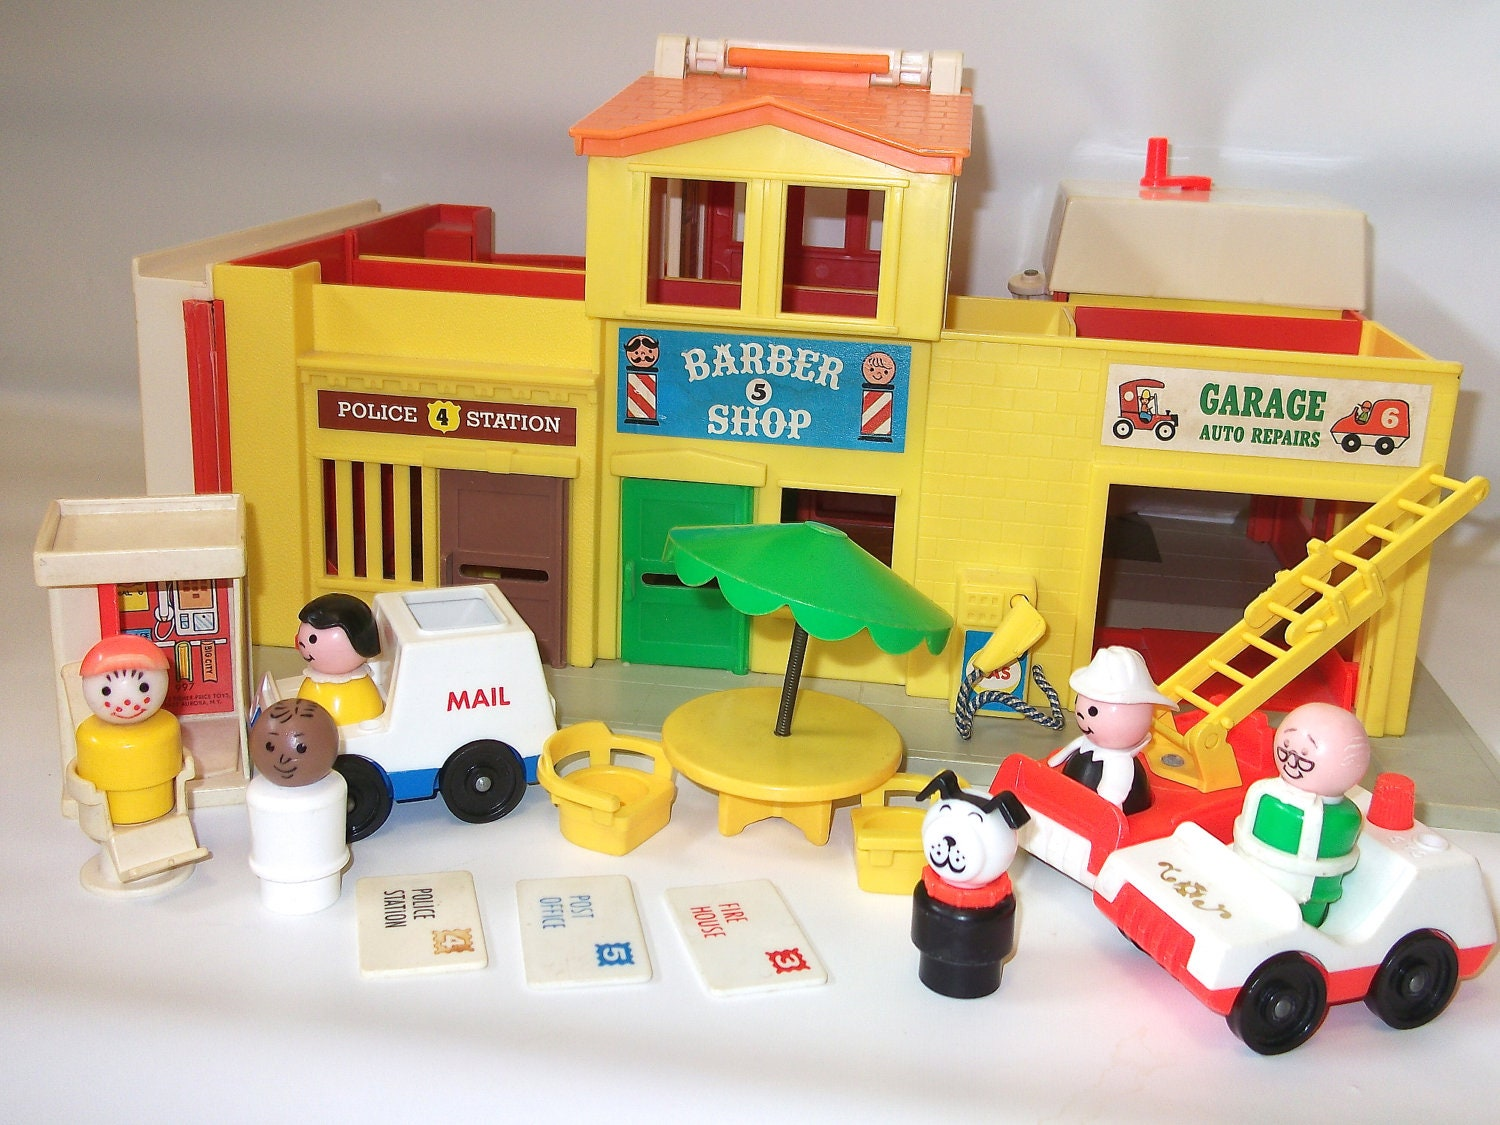 Popular Toys In 1973 : Vintage fisher price play family village by retroclassics